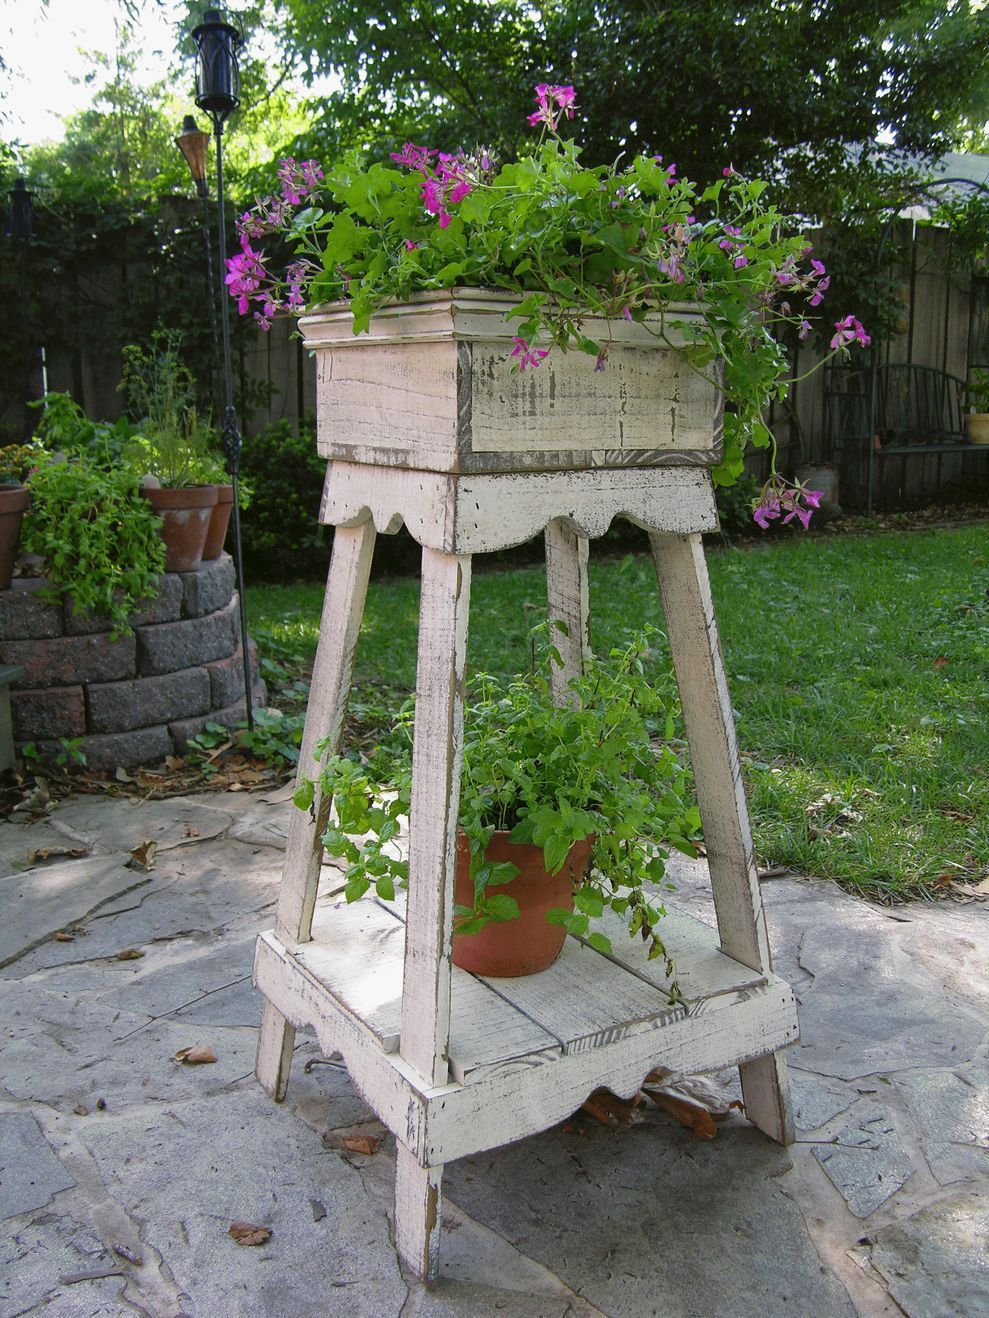 Amazing Wooden Garden Planters Ideas You Should Try 38 #woodengardenplanters